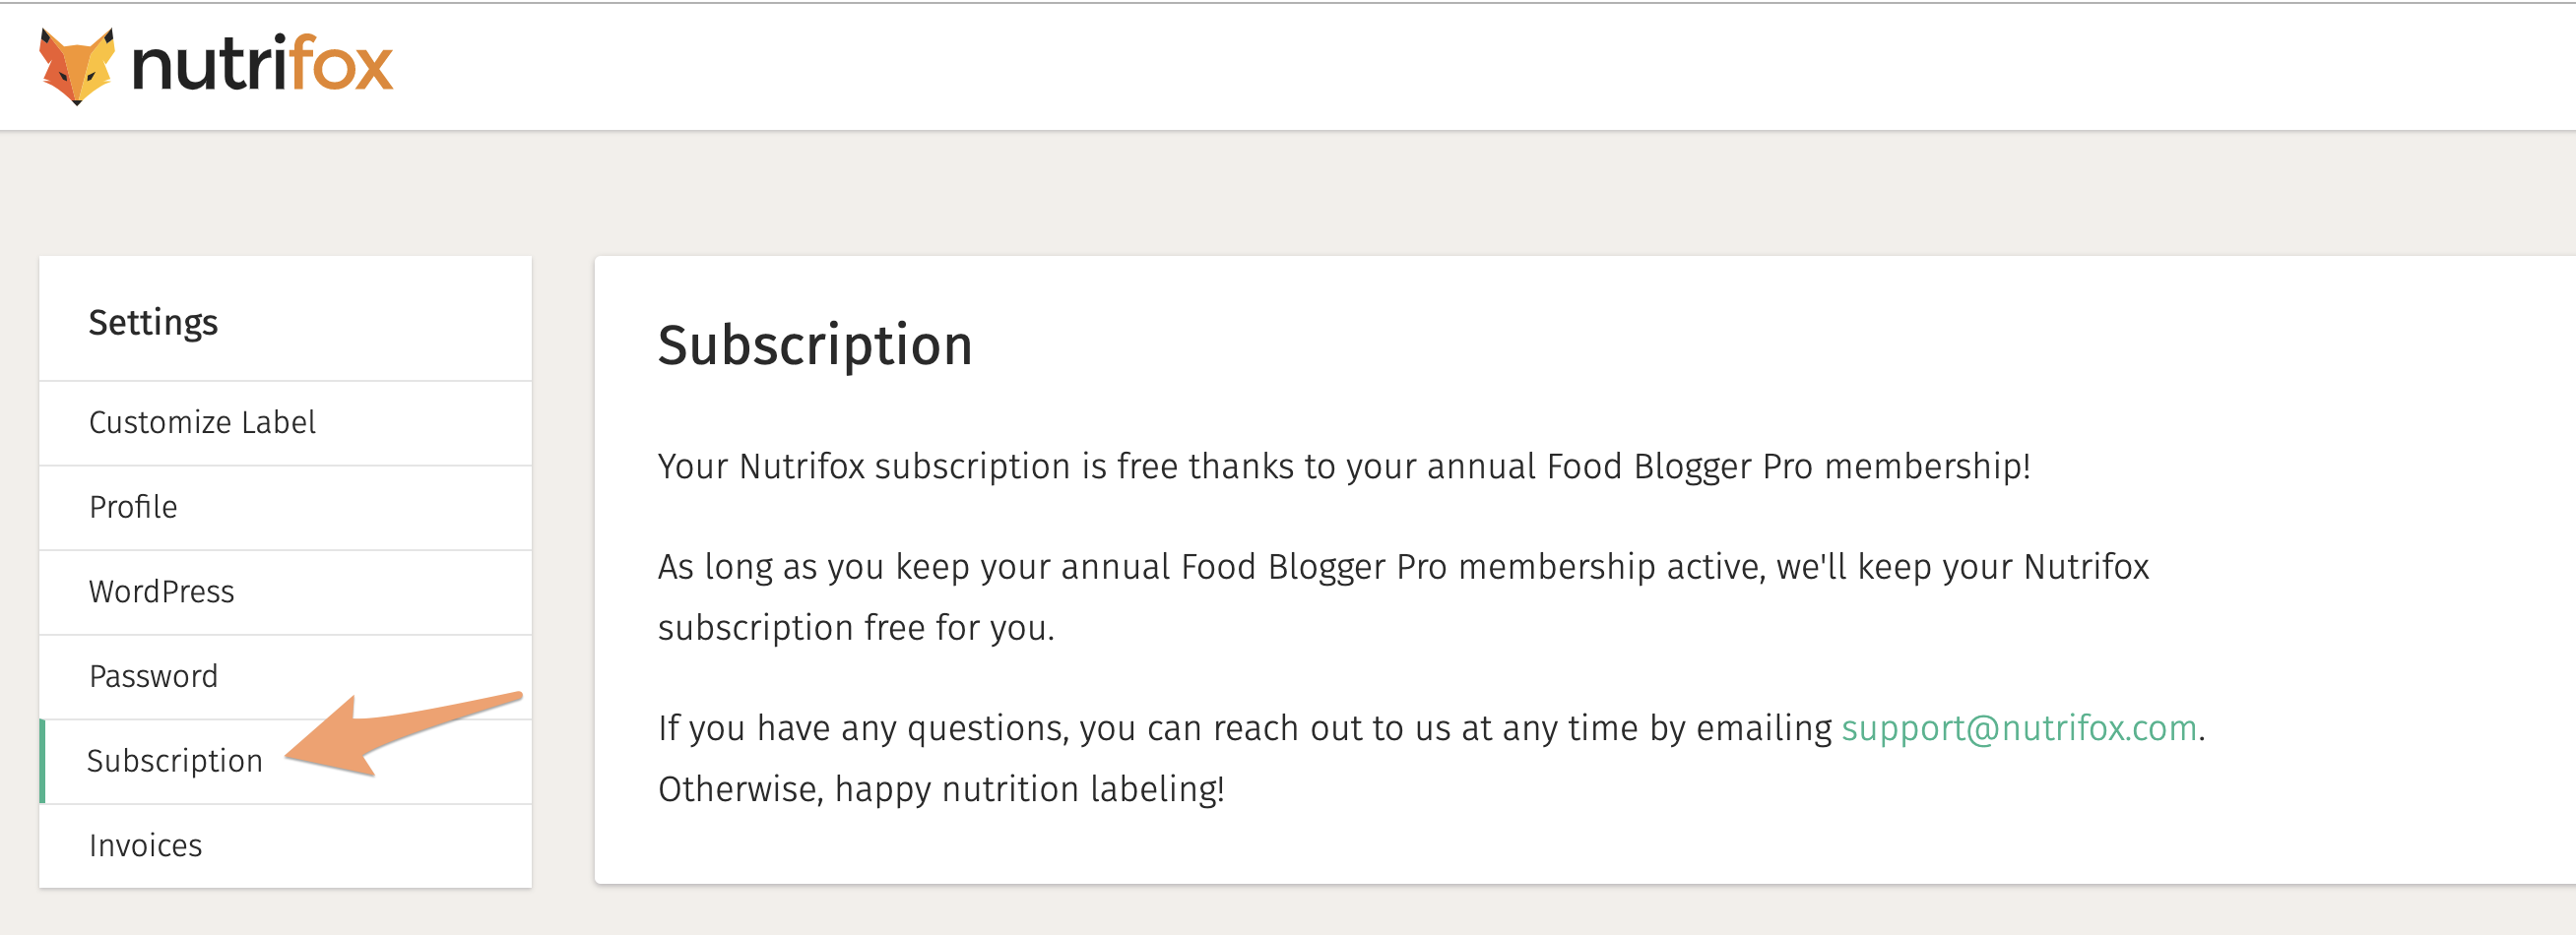 The Subscription Settings page on Nutrifox